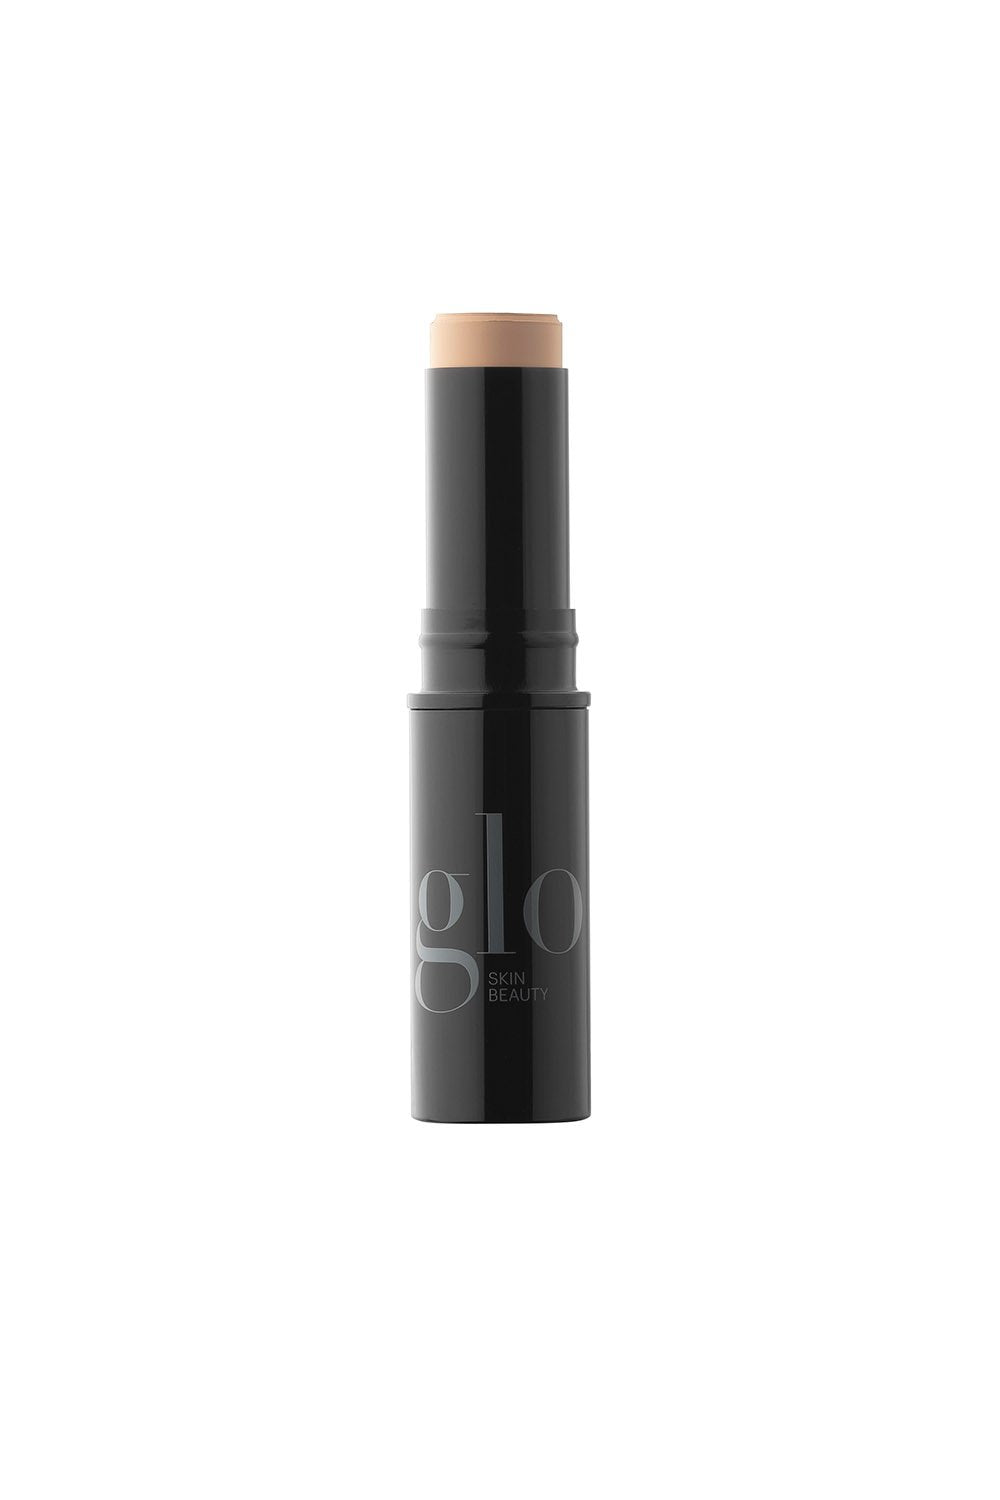 202-2-325 HD Mineral Foundation Stick - Bisque 2W -Tester